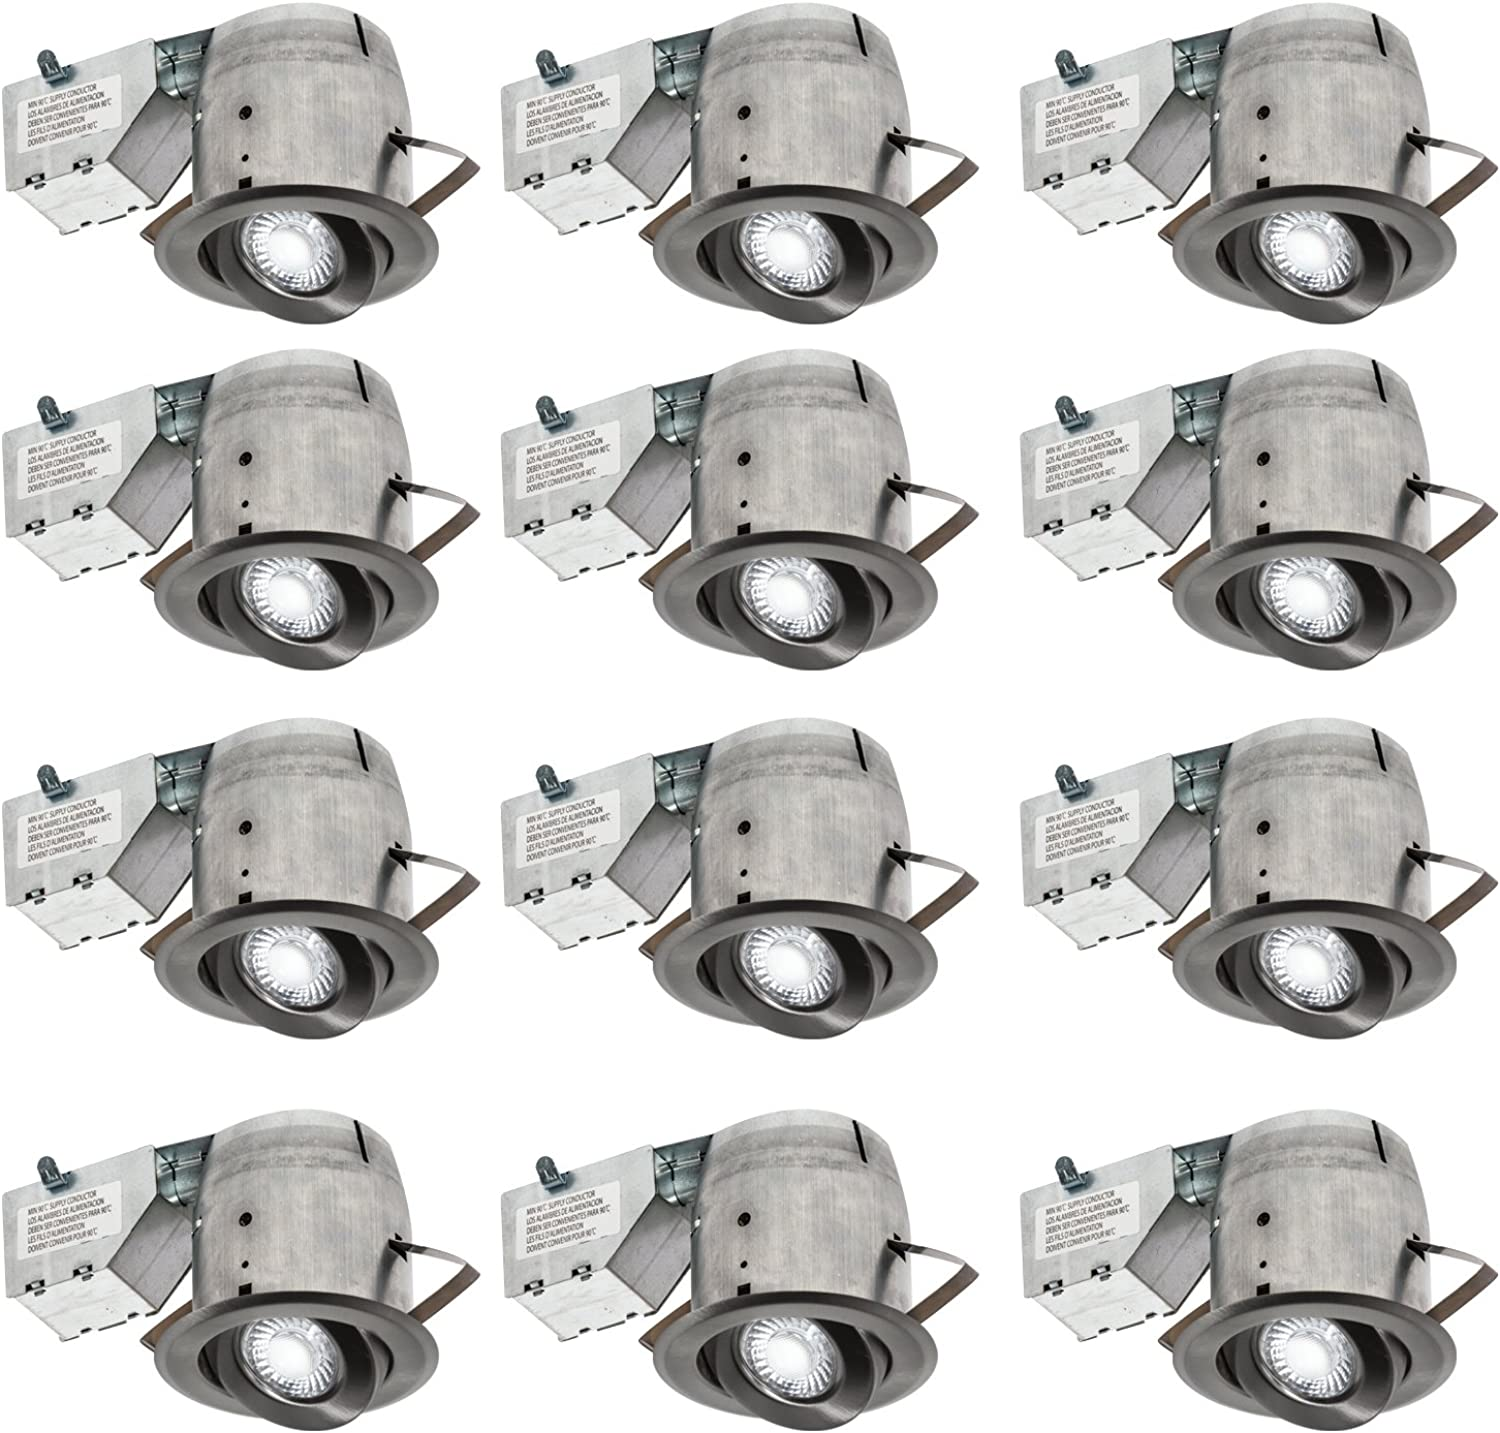 Nadair 4in LED Recessed Lighting Kit (x12) Swivel Spotlight Dimmable Downlight, 3000K Warm White GU10 550 Lumens Bulbs (50 Watts Equivalent) Included, 12-Pack Brushed Nickel color